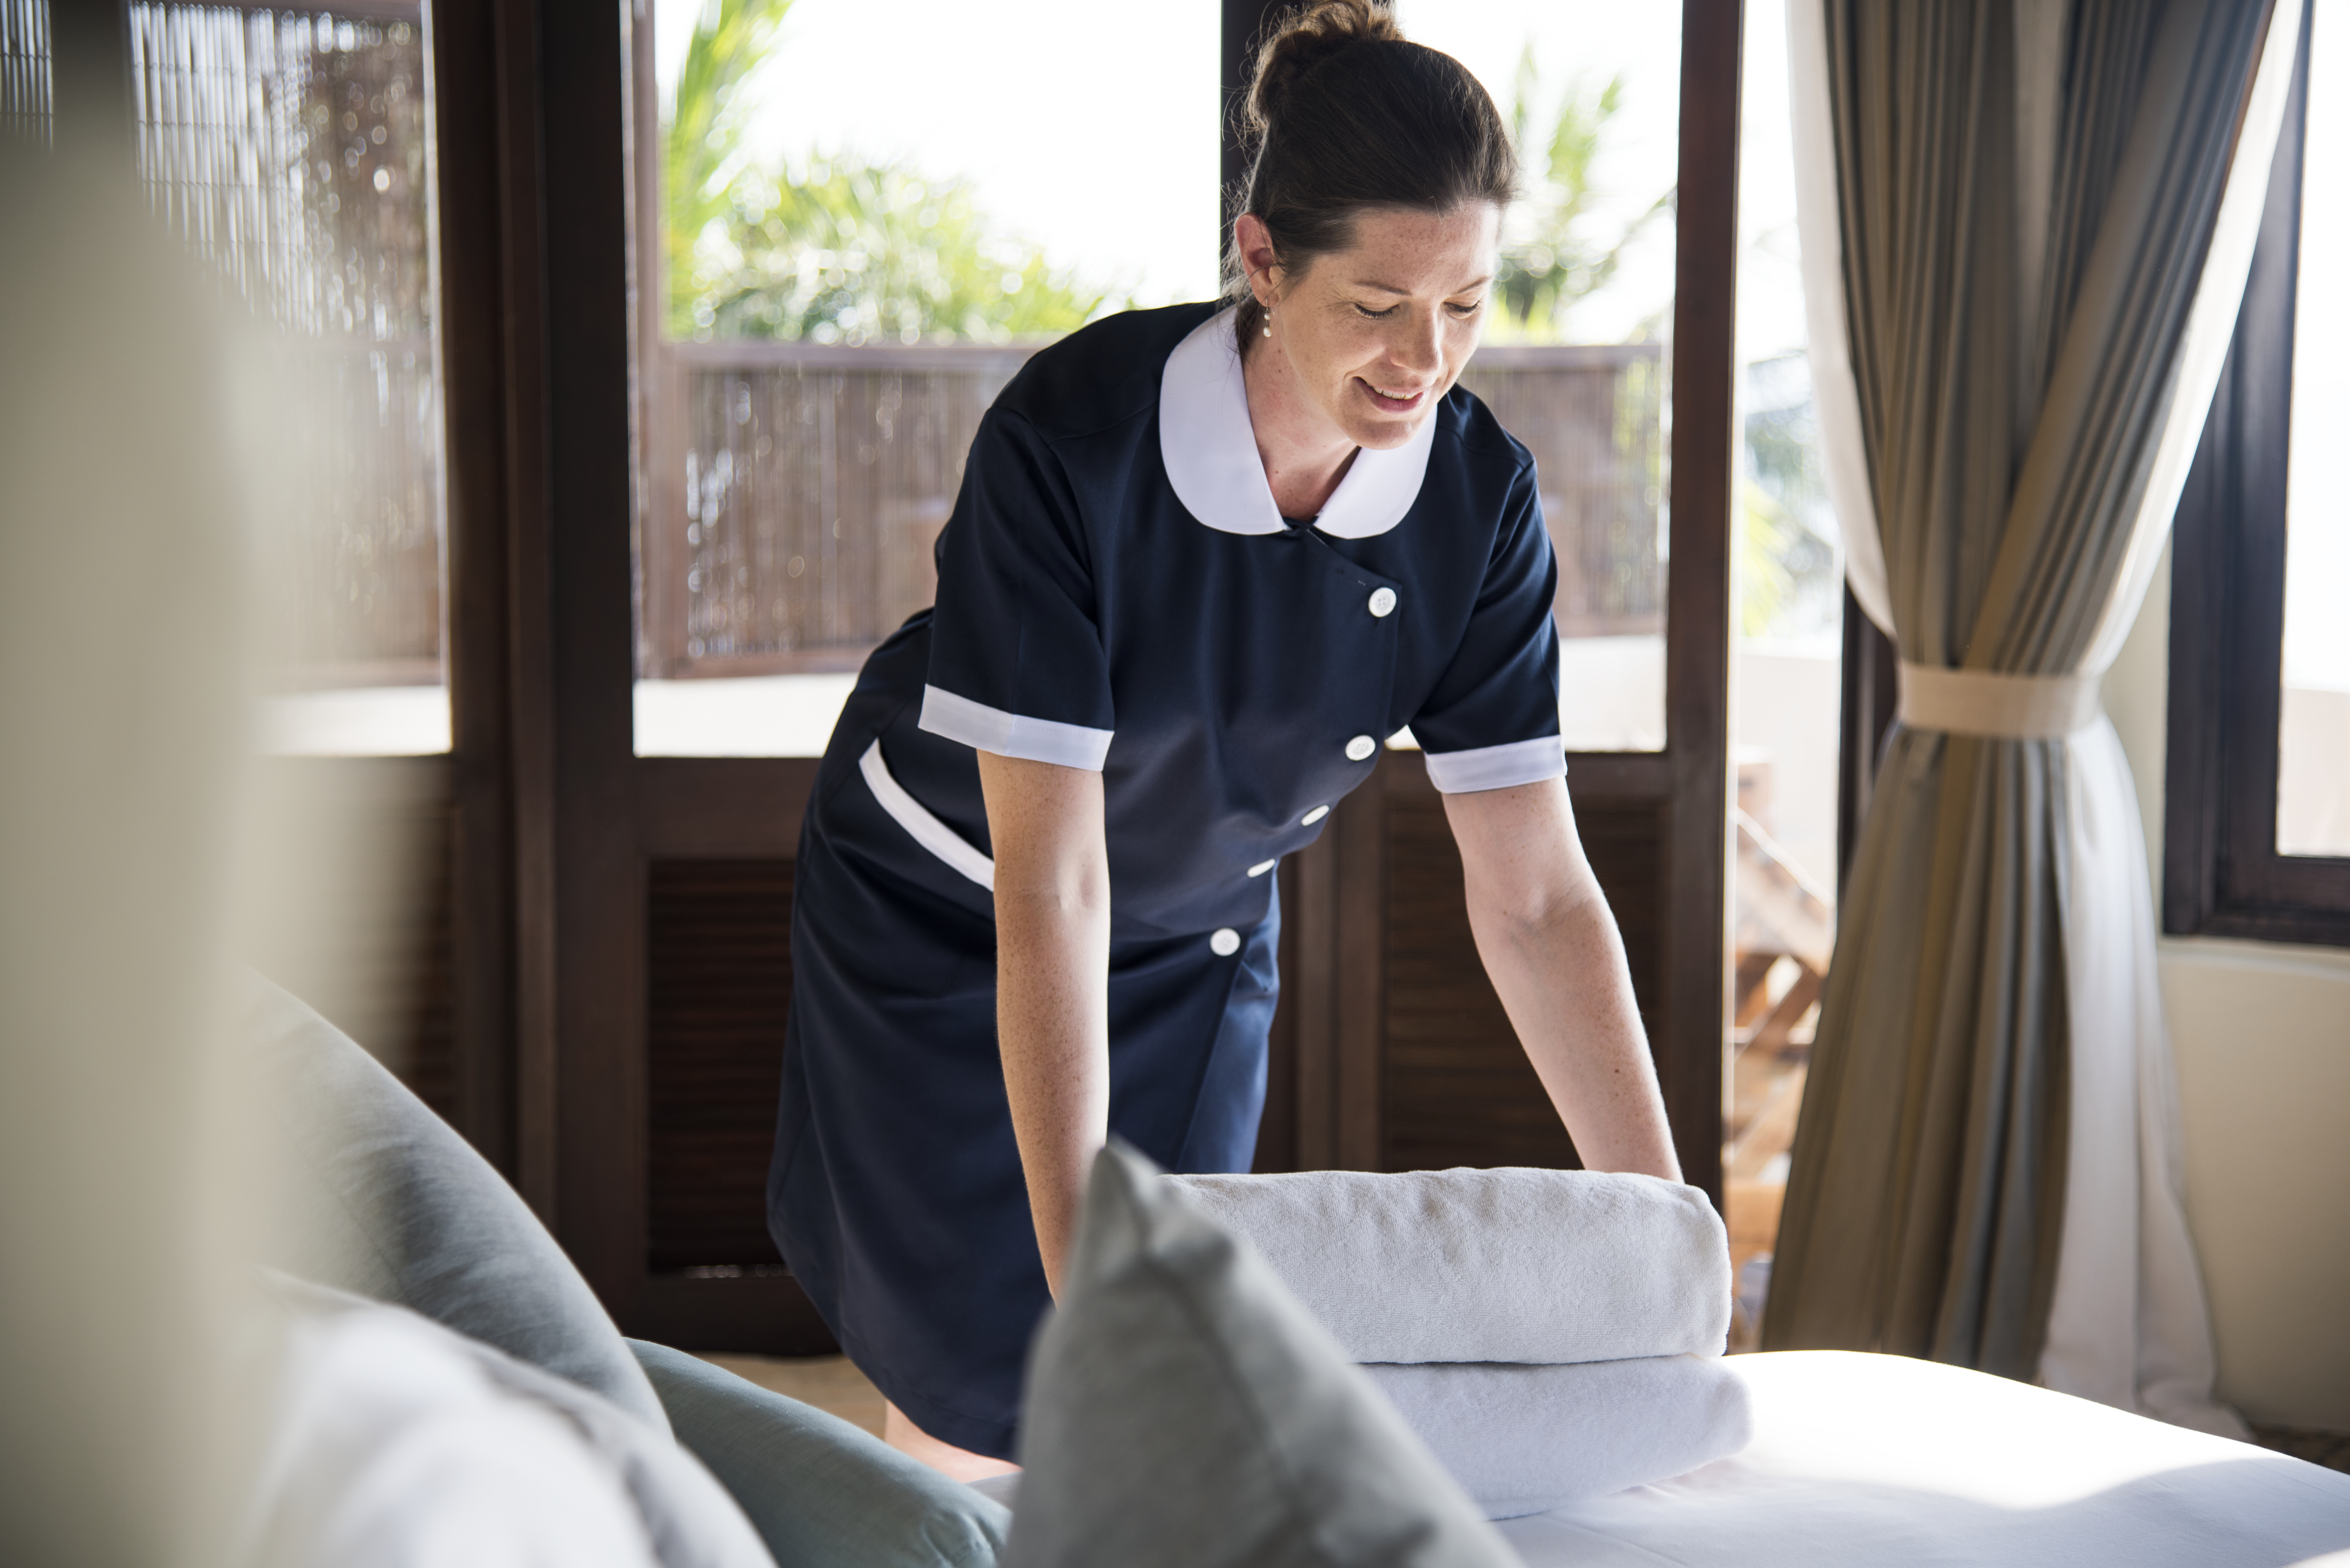 housekeeper-cleaning-a-hotel-room-VUPSDAQ